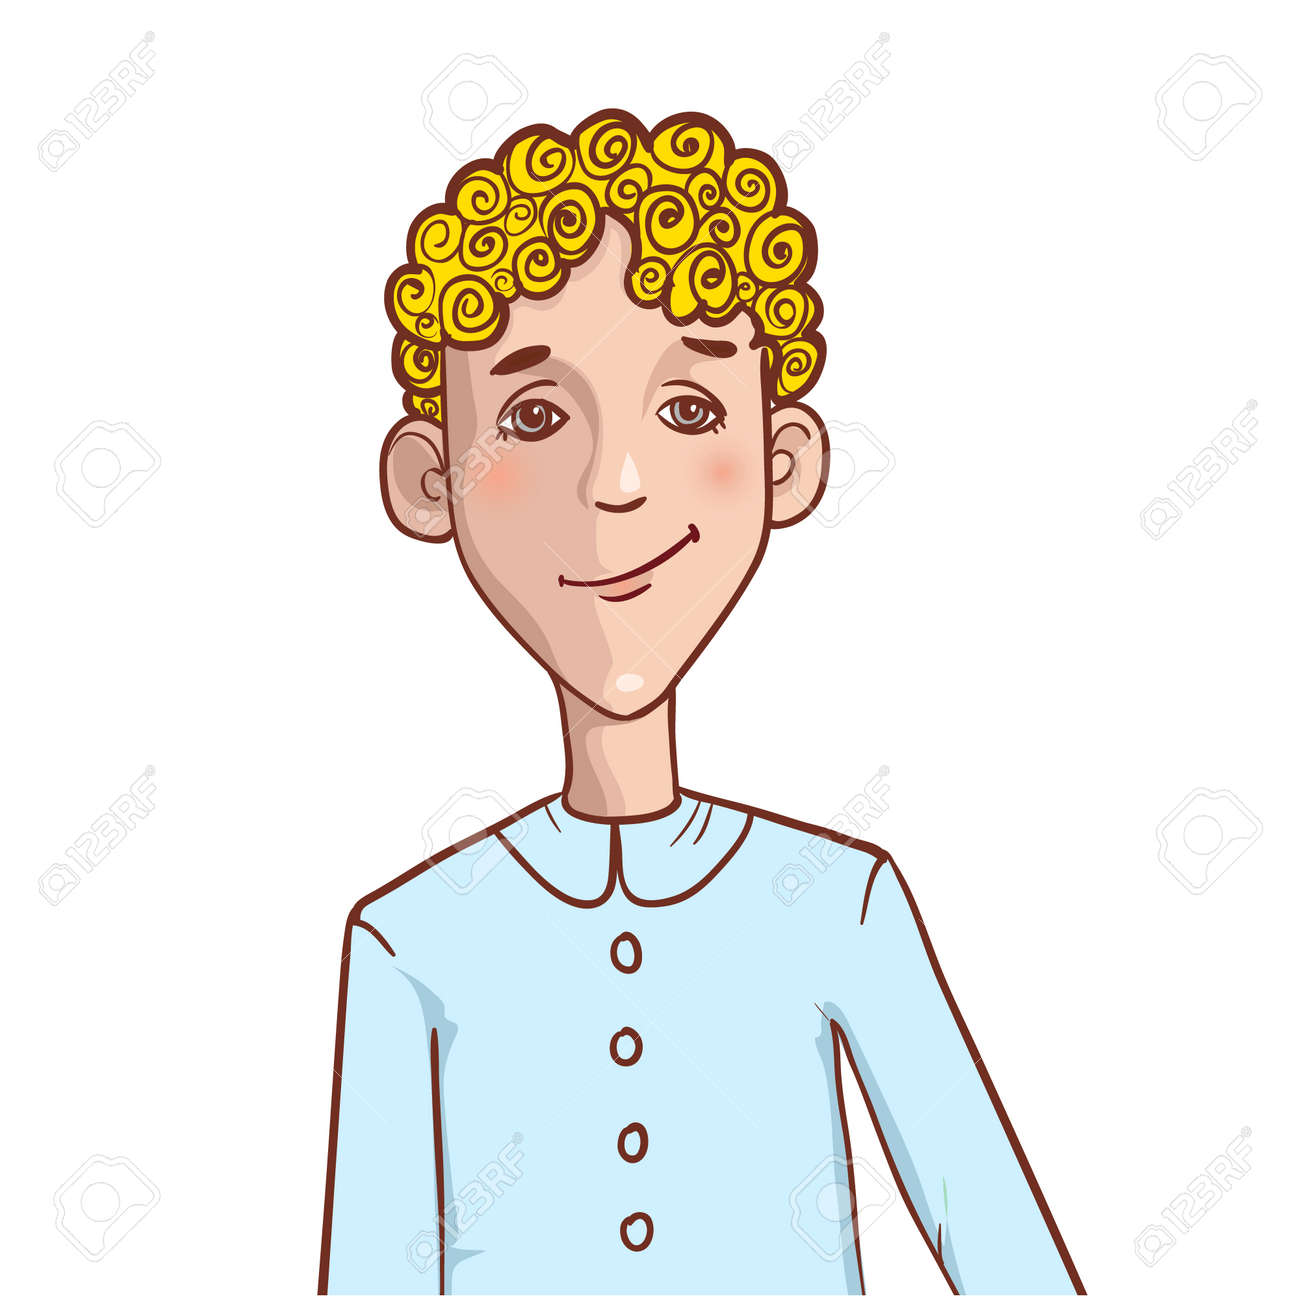 Teenager Cartoon Boy With Curly Hair Royalty Free Cliparts Vectors And Stock Illustration Image 24916602